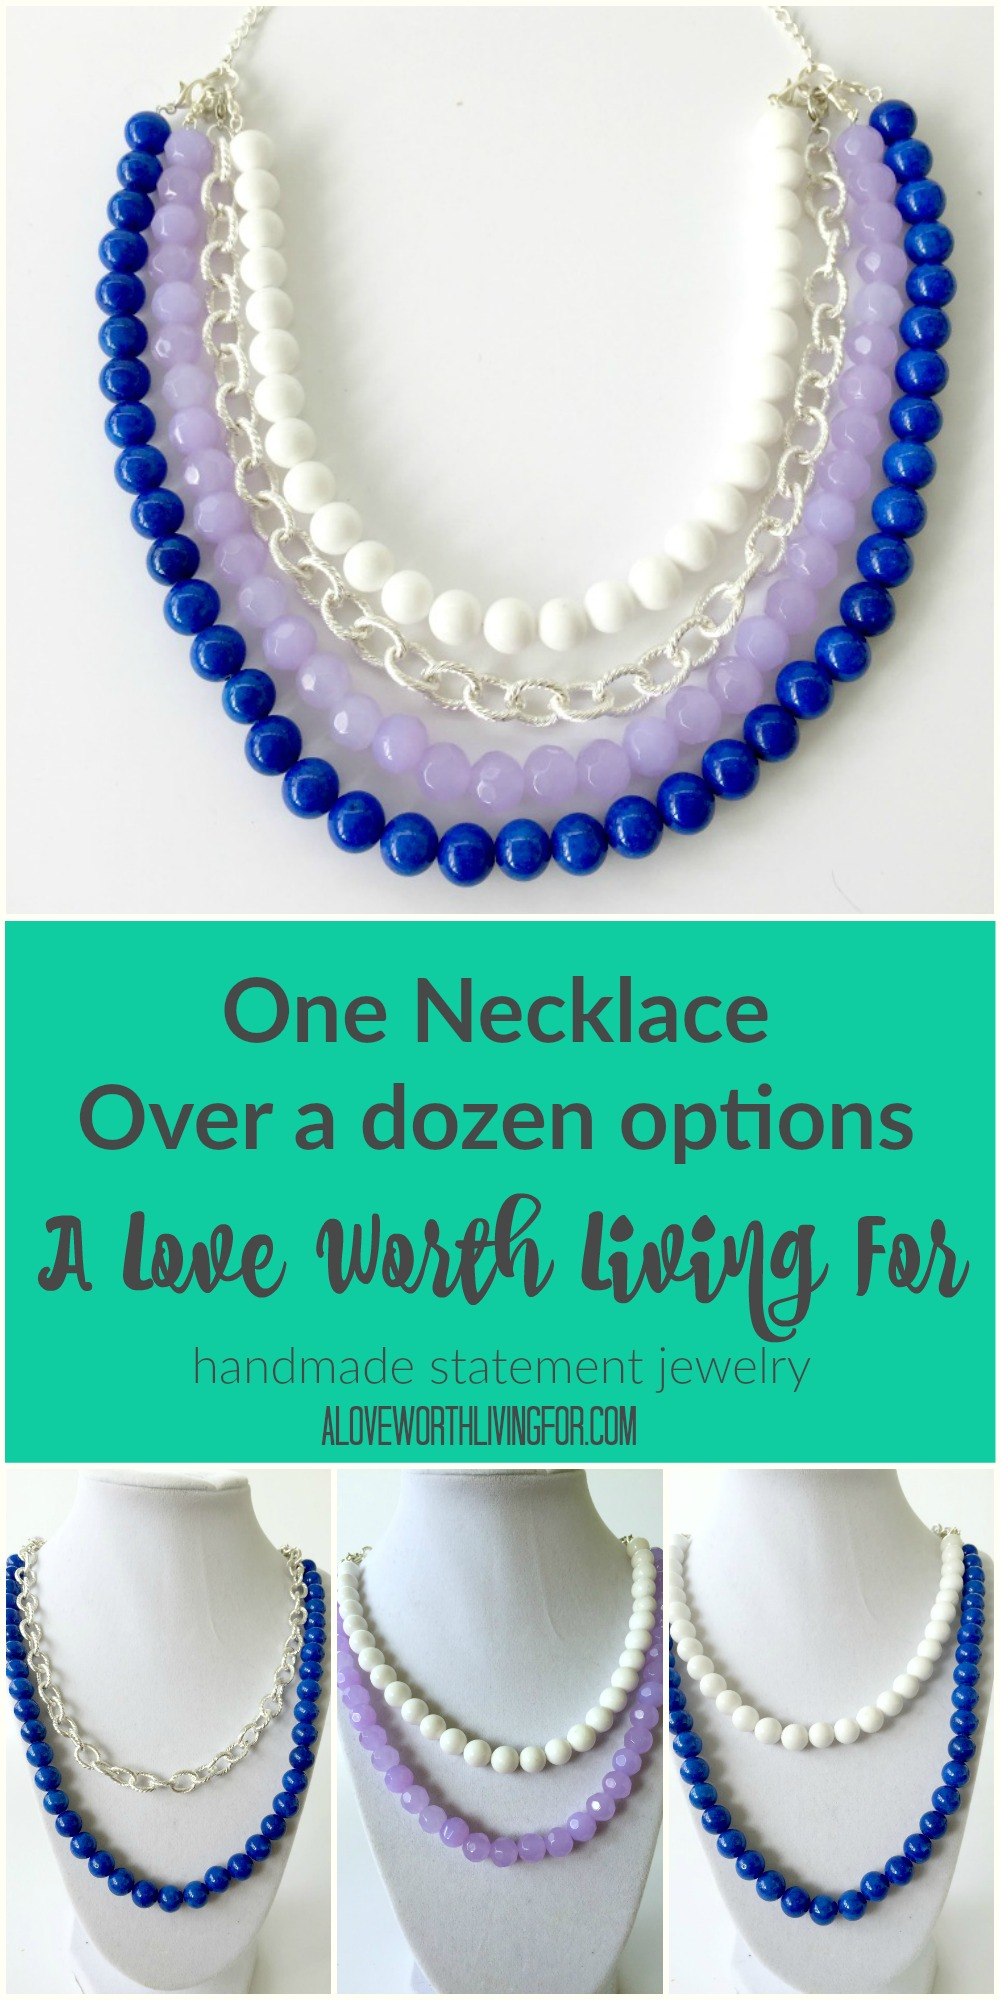 One Necklace. Over a dozen options. How will you wear it? Handmade Interchangeable Statement Necklaces by A Love Worth Living For